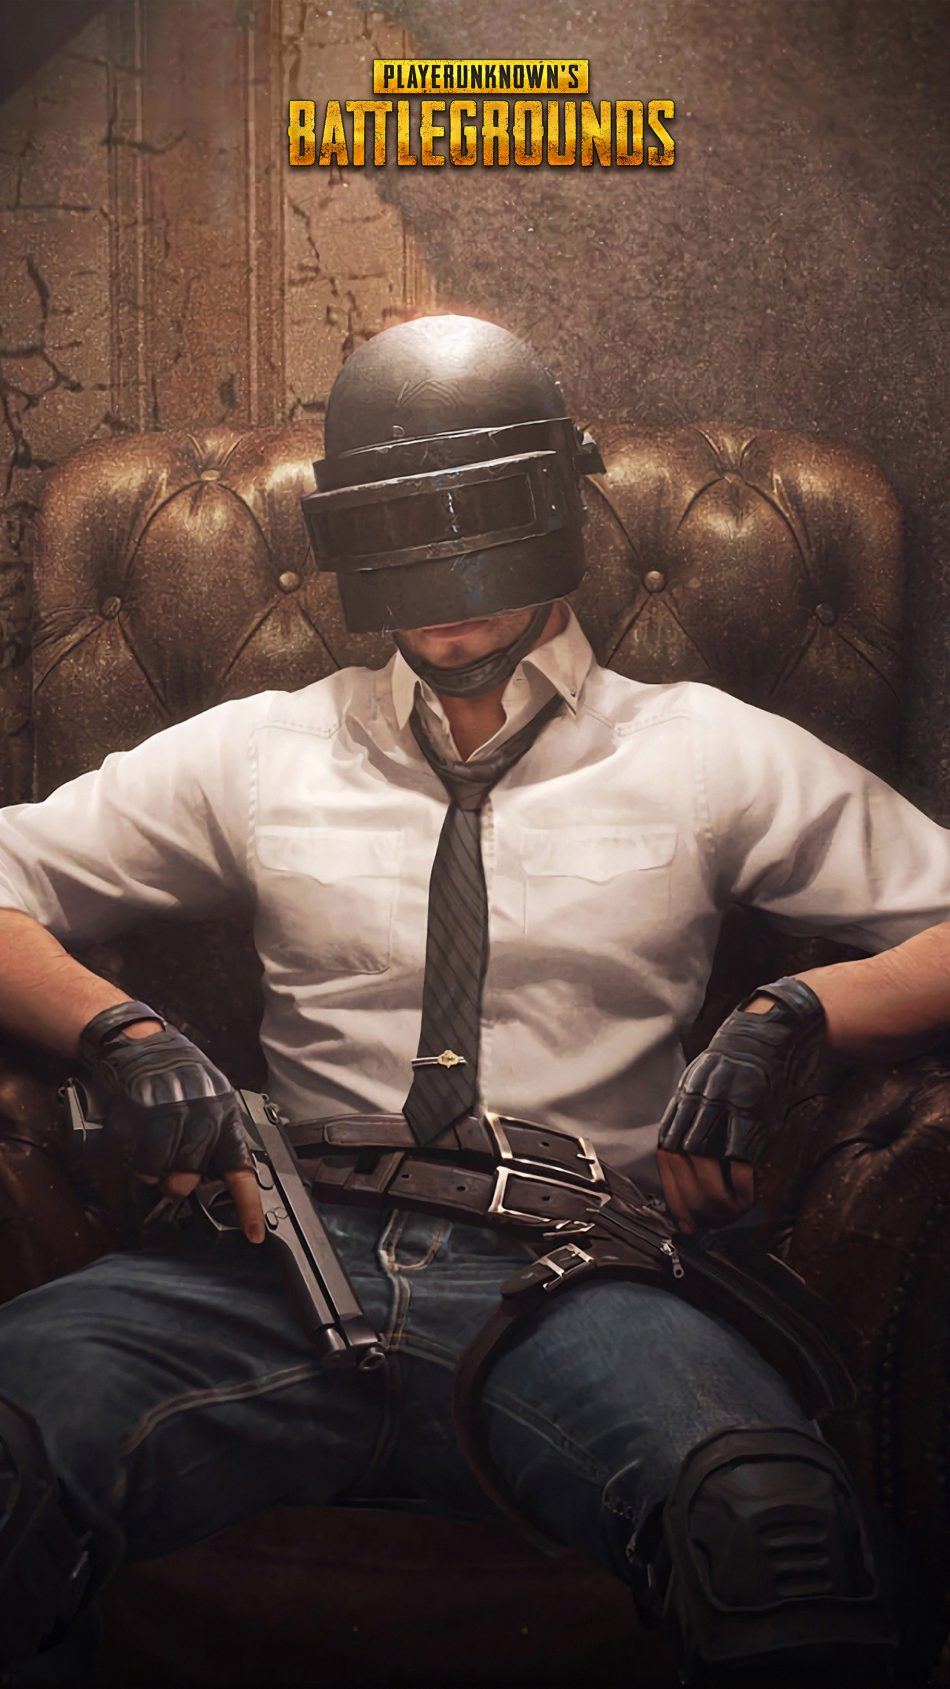 Download Pubg Helmet Guy Playerunknown S Battlegrounds Free